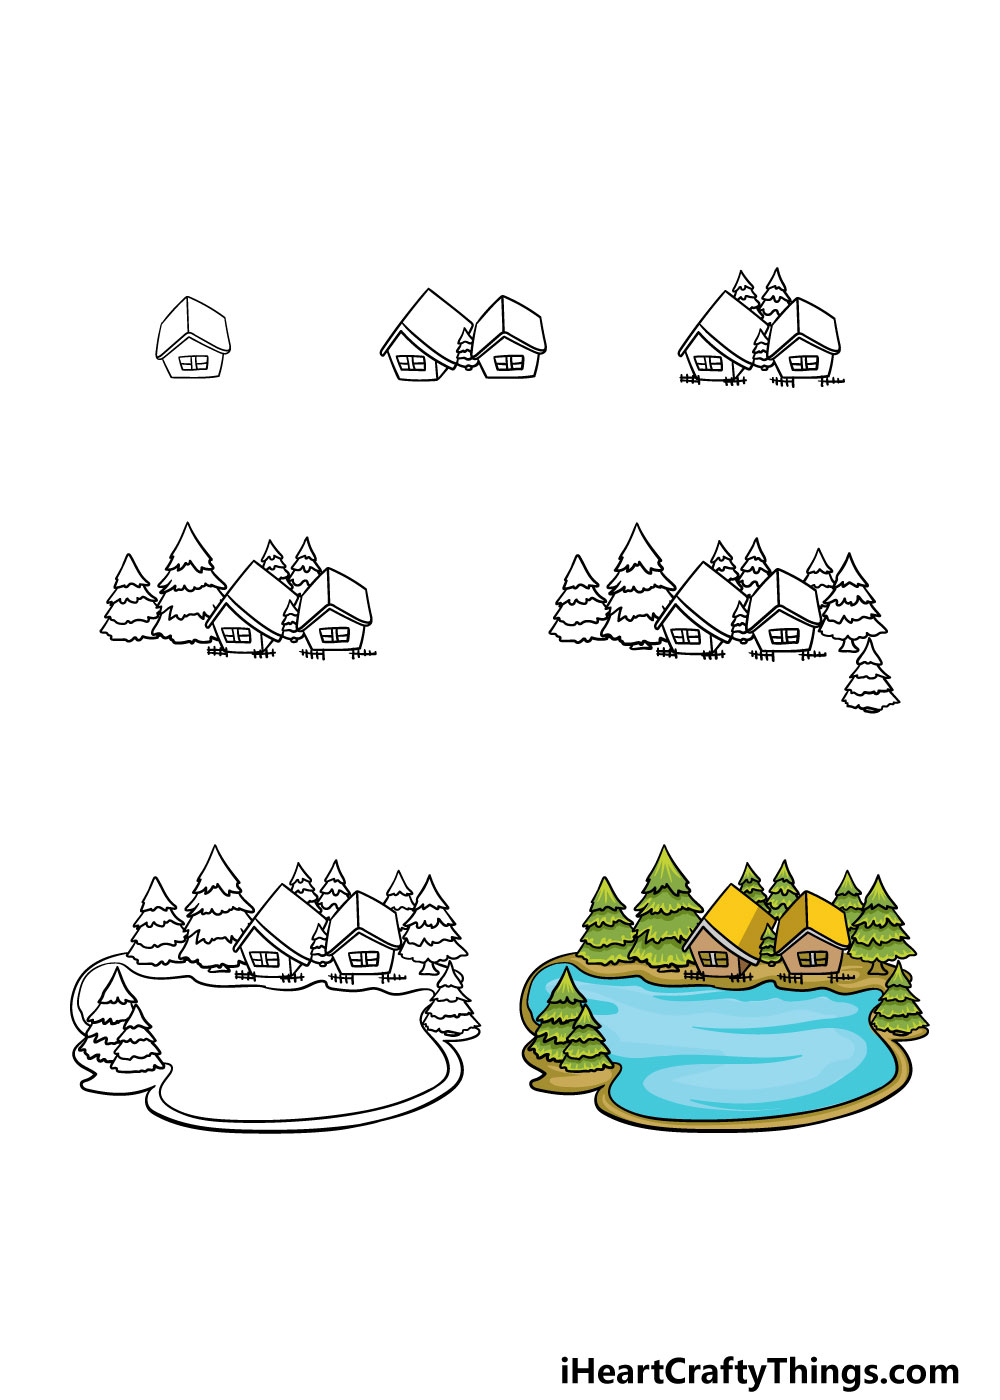 how to draw a lake in 7 steps